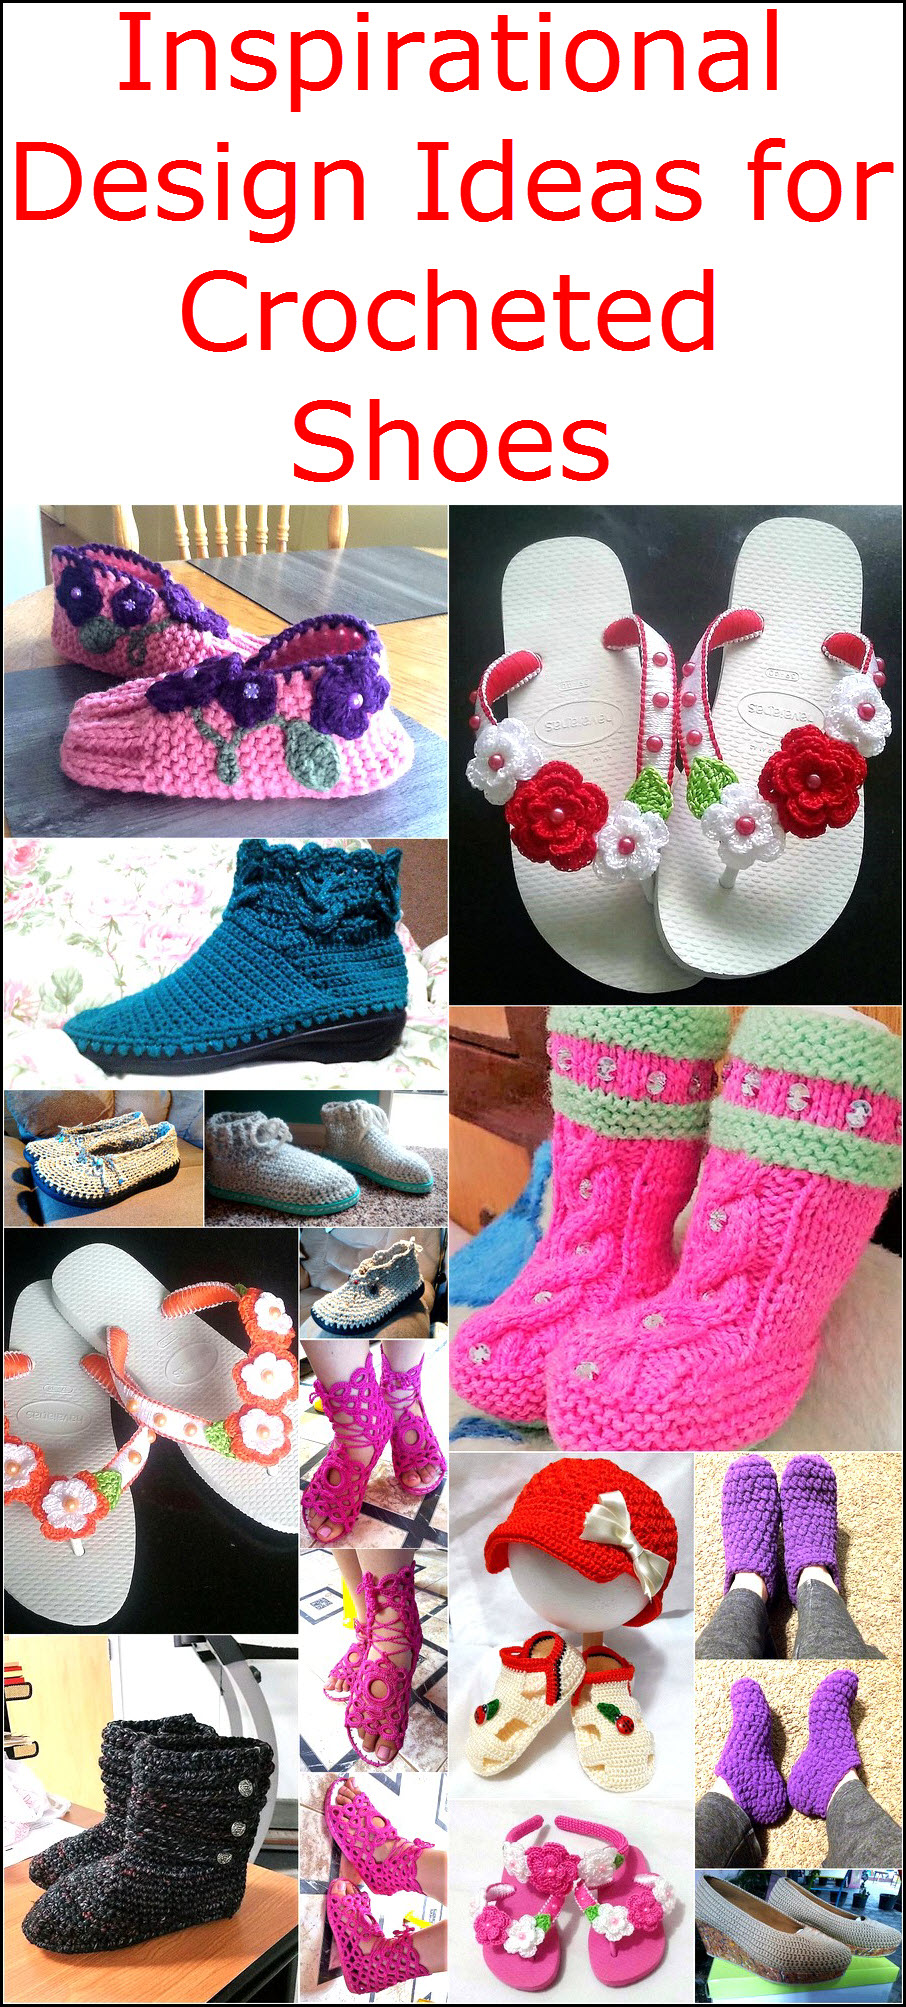 inspirational-design-ideas-for-crocheted-shoes